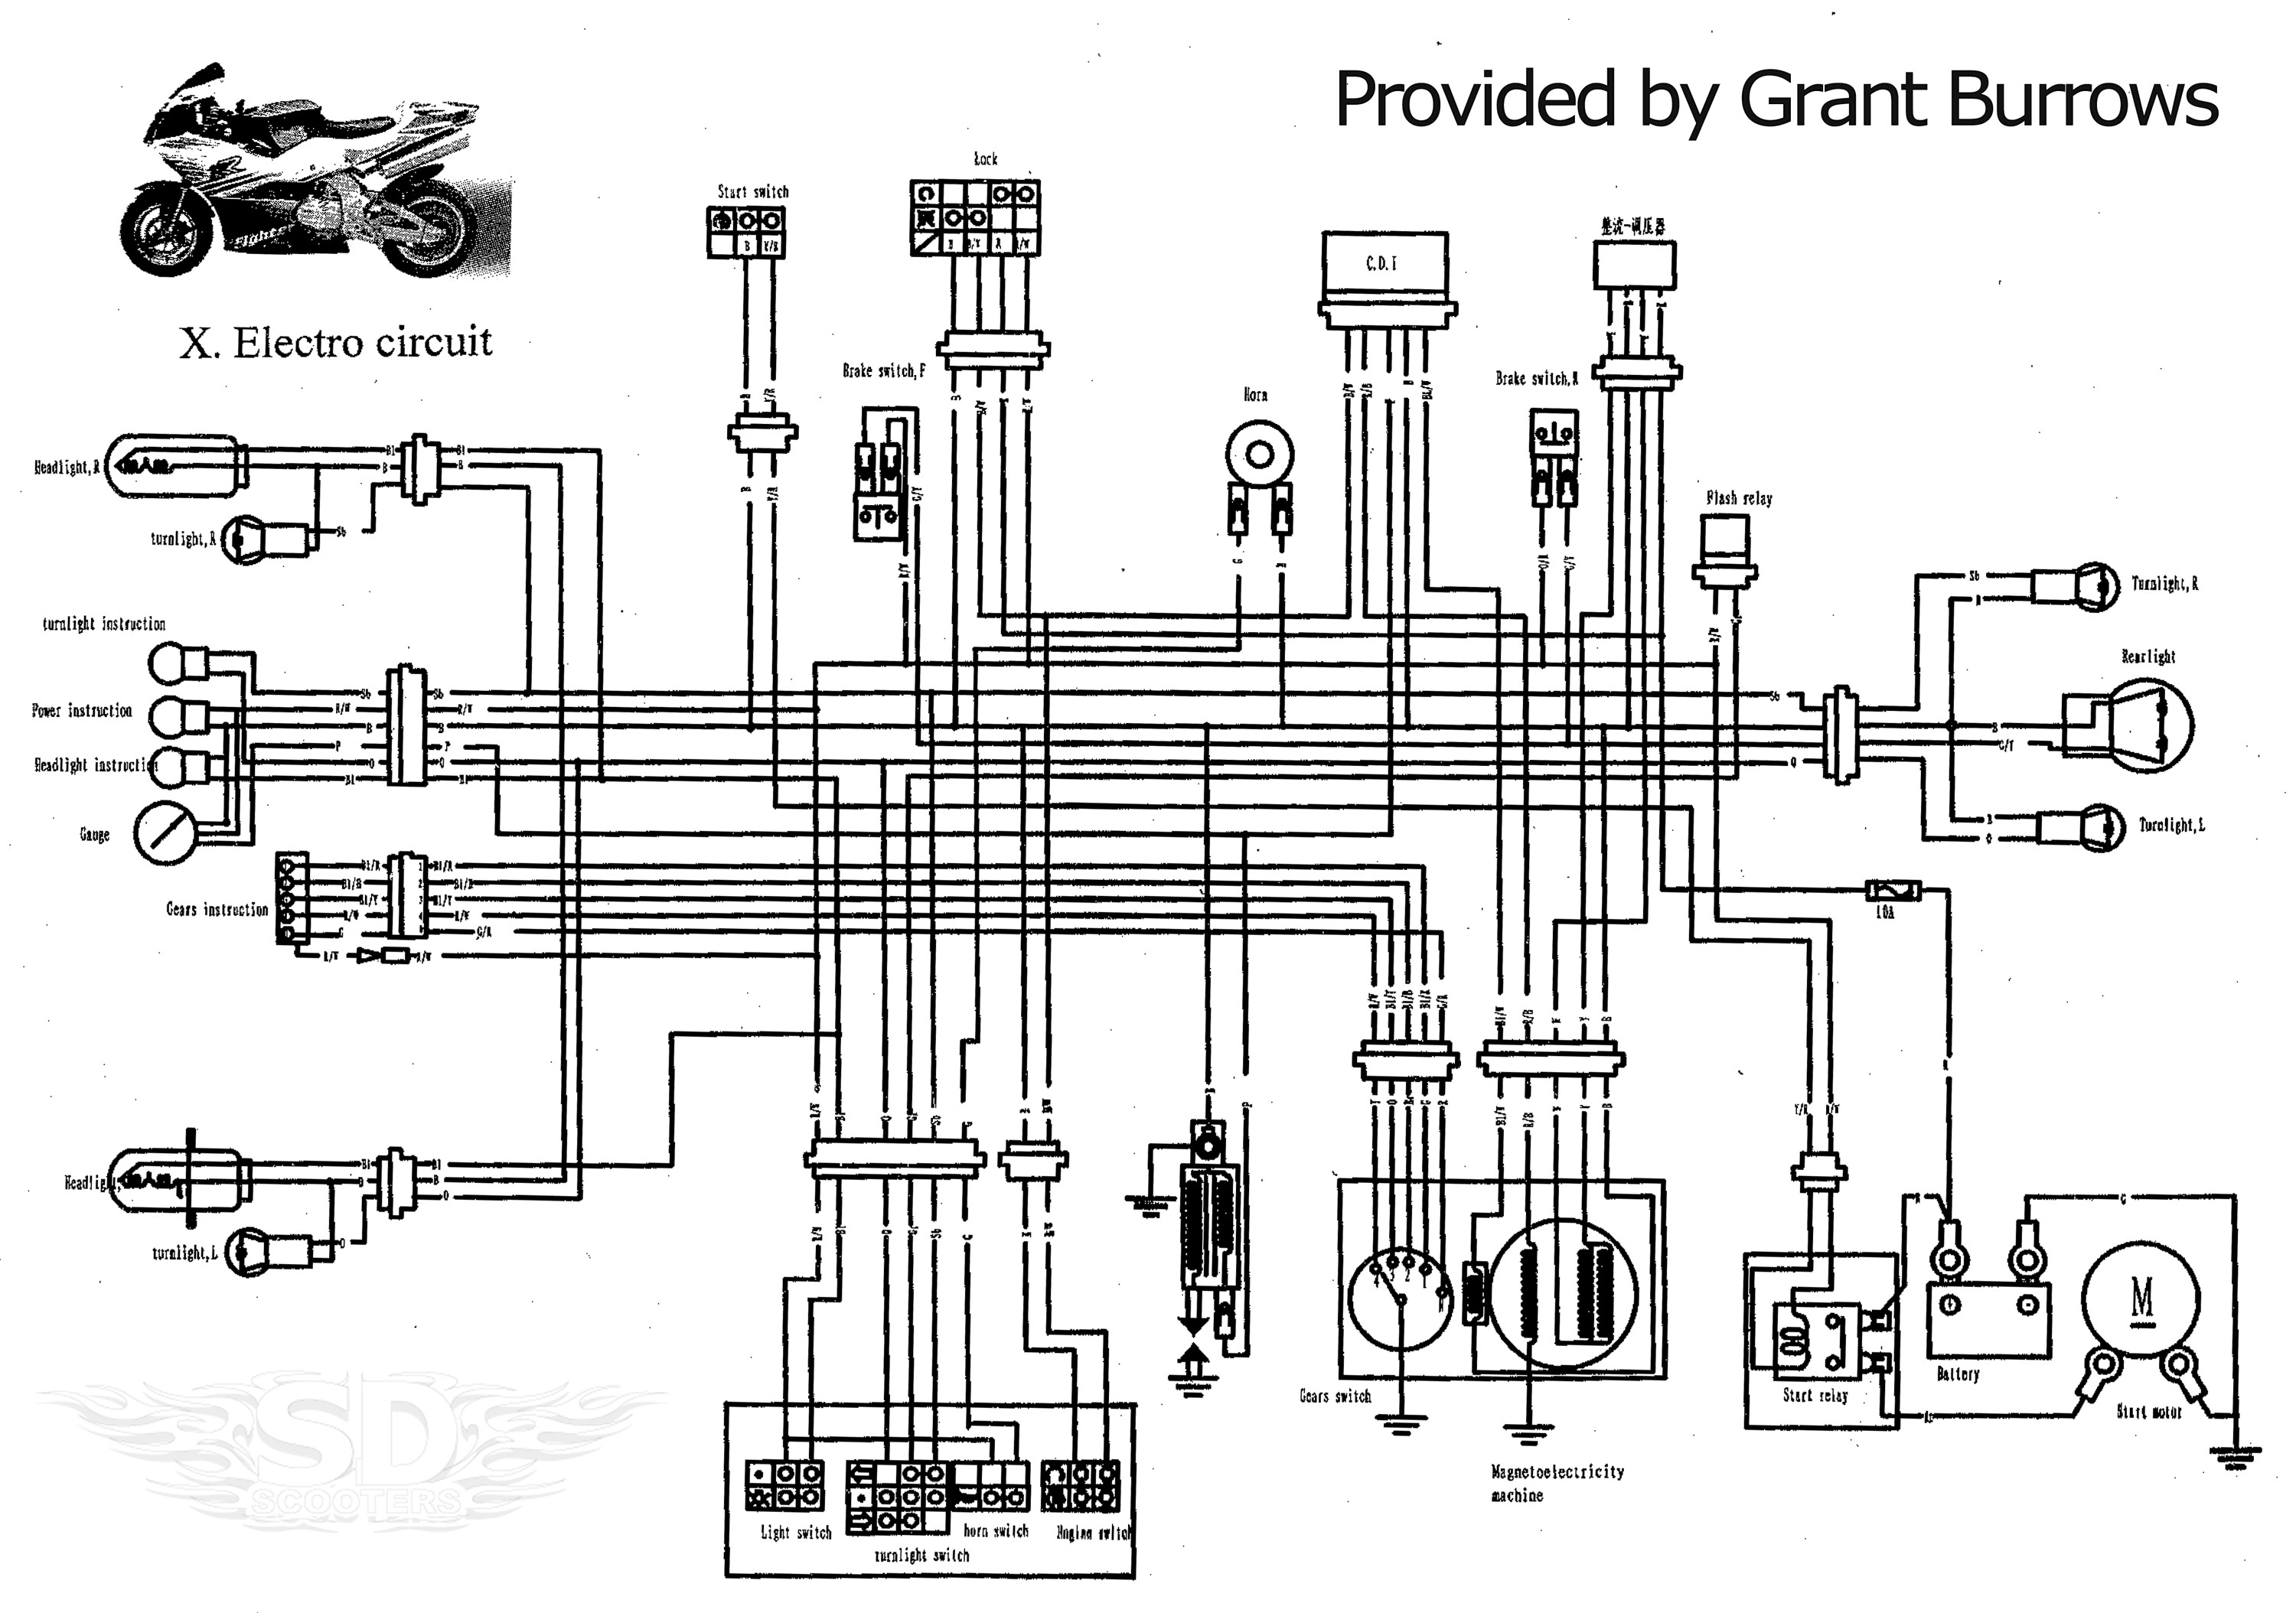 Full Car Engine Diagram Eye Pocket Bike Wiring Diagram Get Free Image About Wiring Diagram Of Full Car Engine Diagram